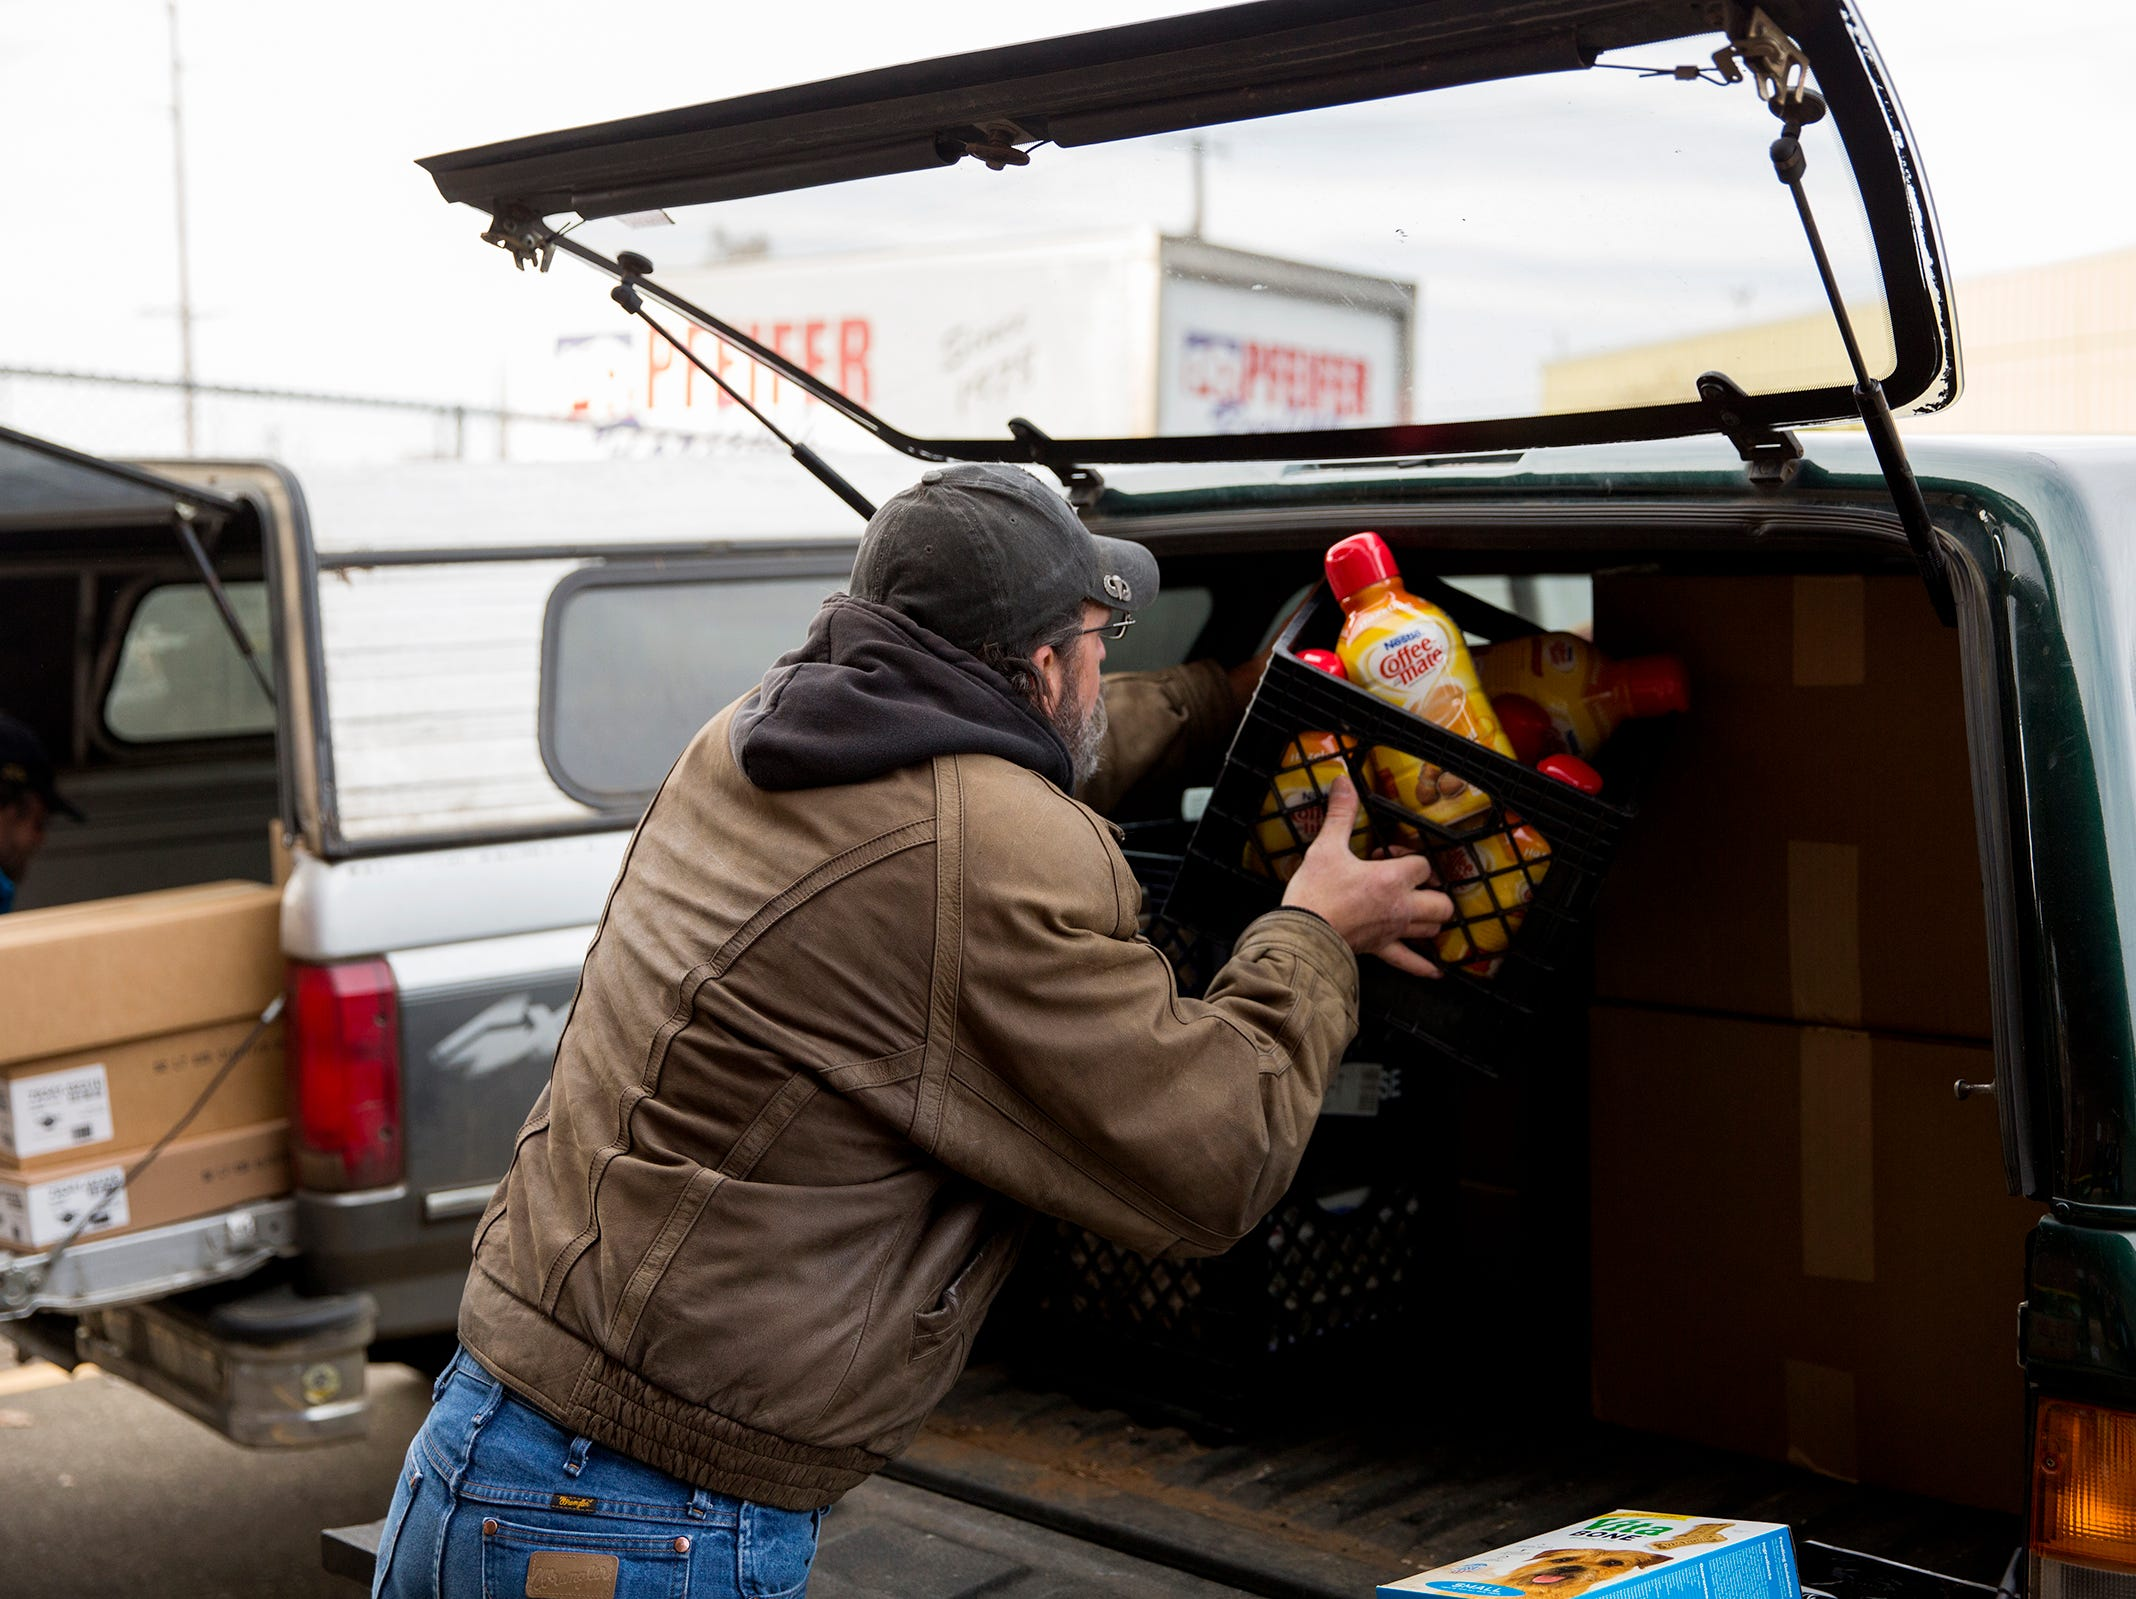 Art Scaglione loads boxes of food into his vehicle at the Marion Polk Food Share on Friday, Dec. 7, 2018. He collects the food for homeless people living in Wallace Marine Park.